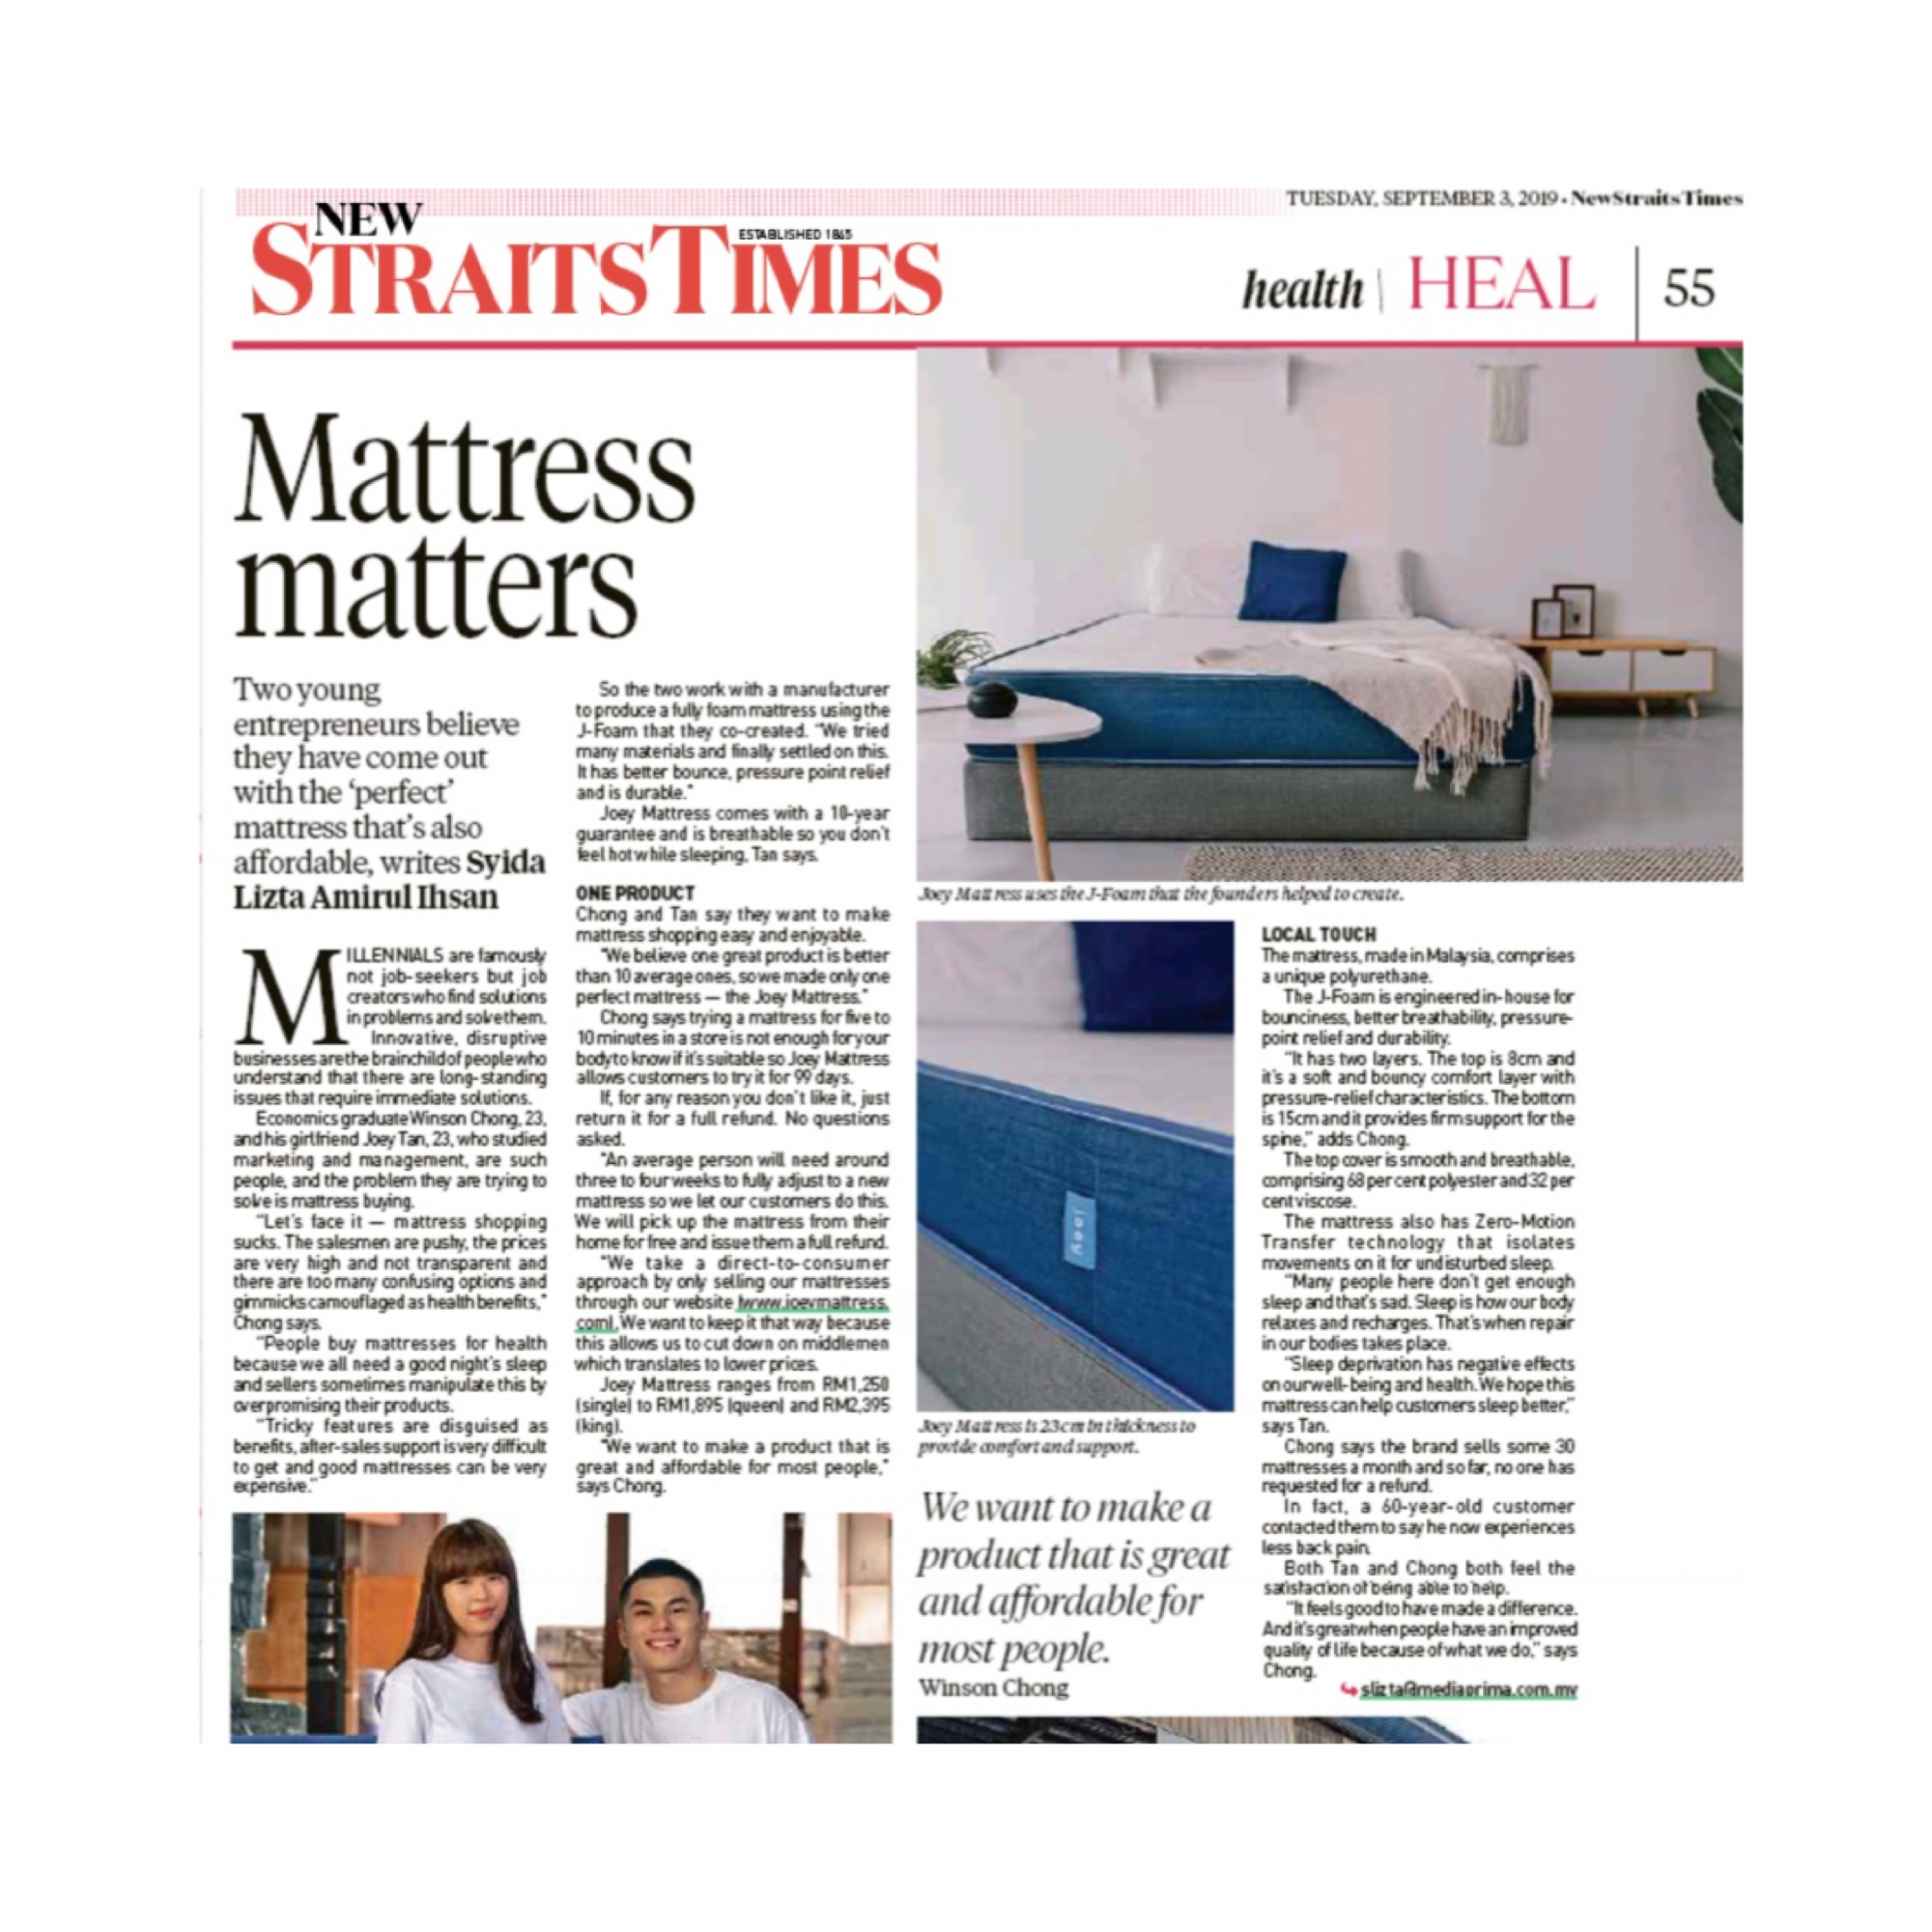 Joey Mattress in News Straits Times